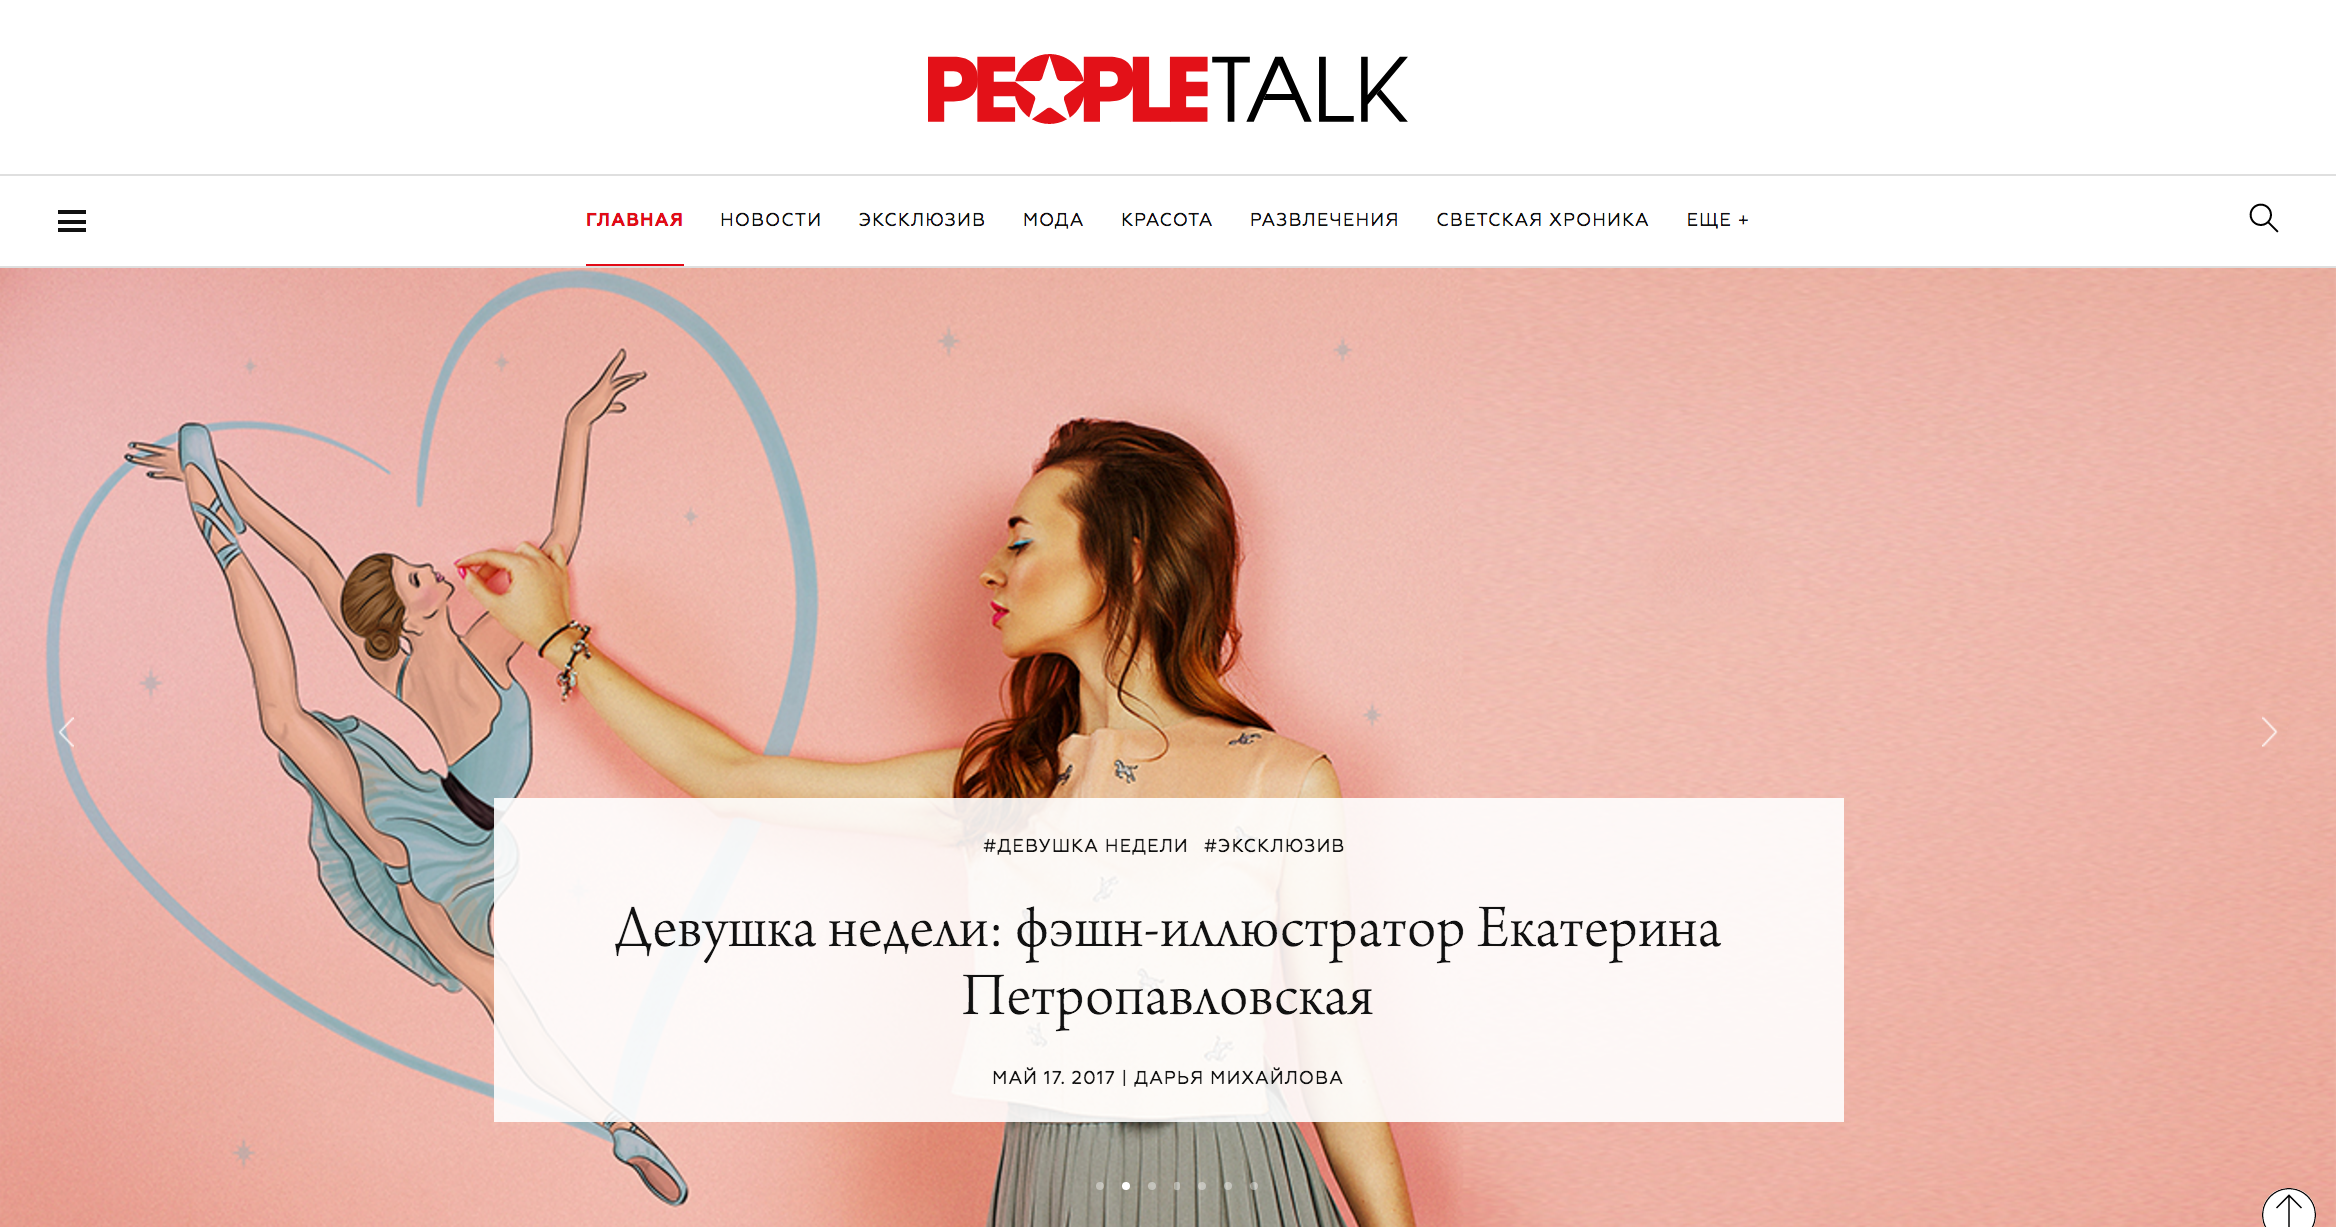 kateillustrate for PEOPLETALK